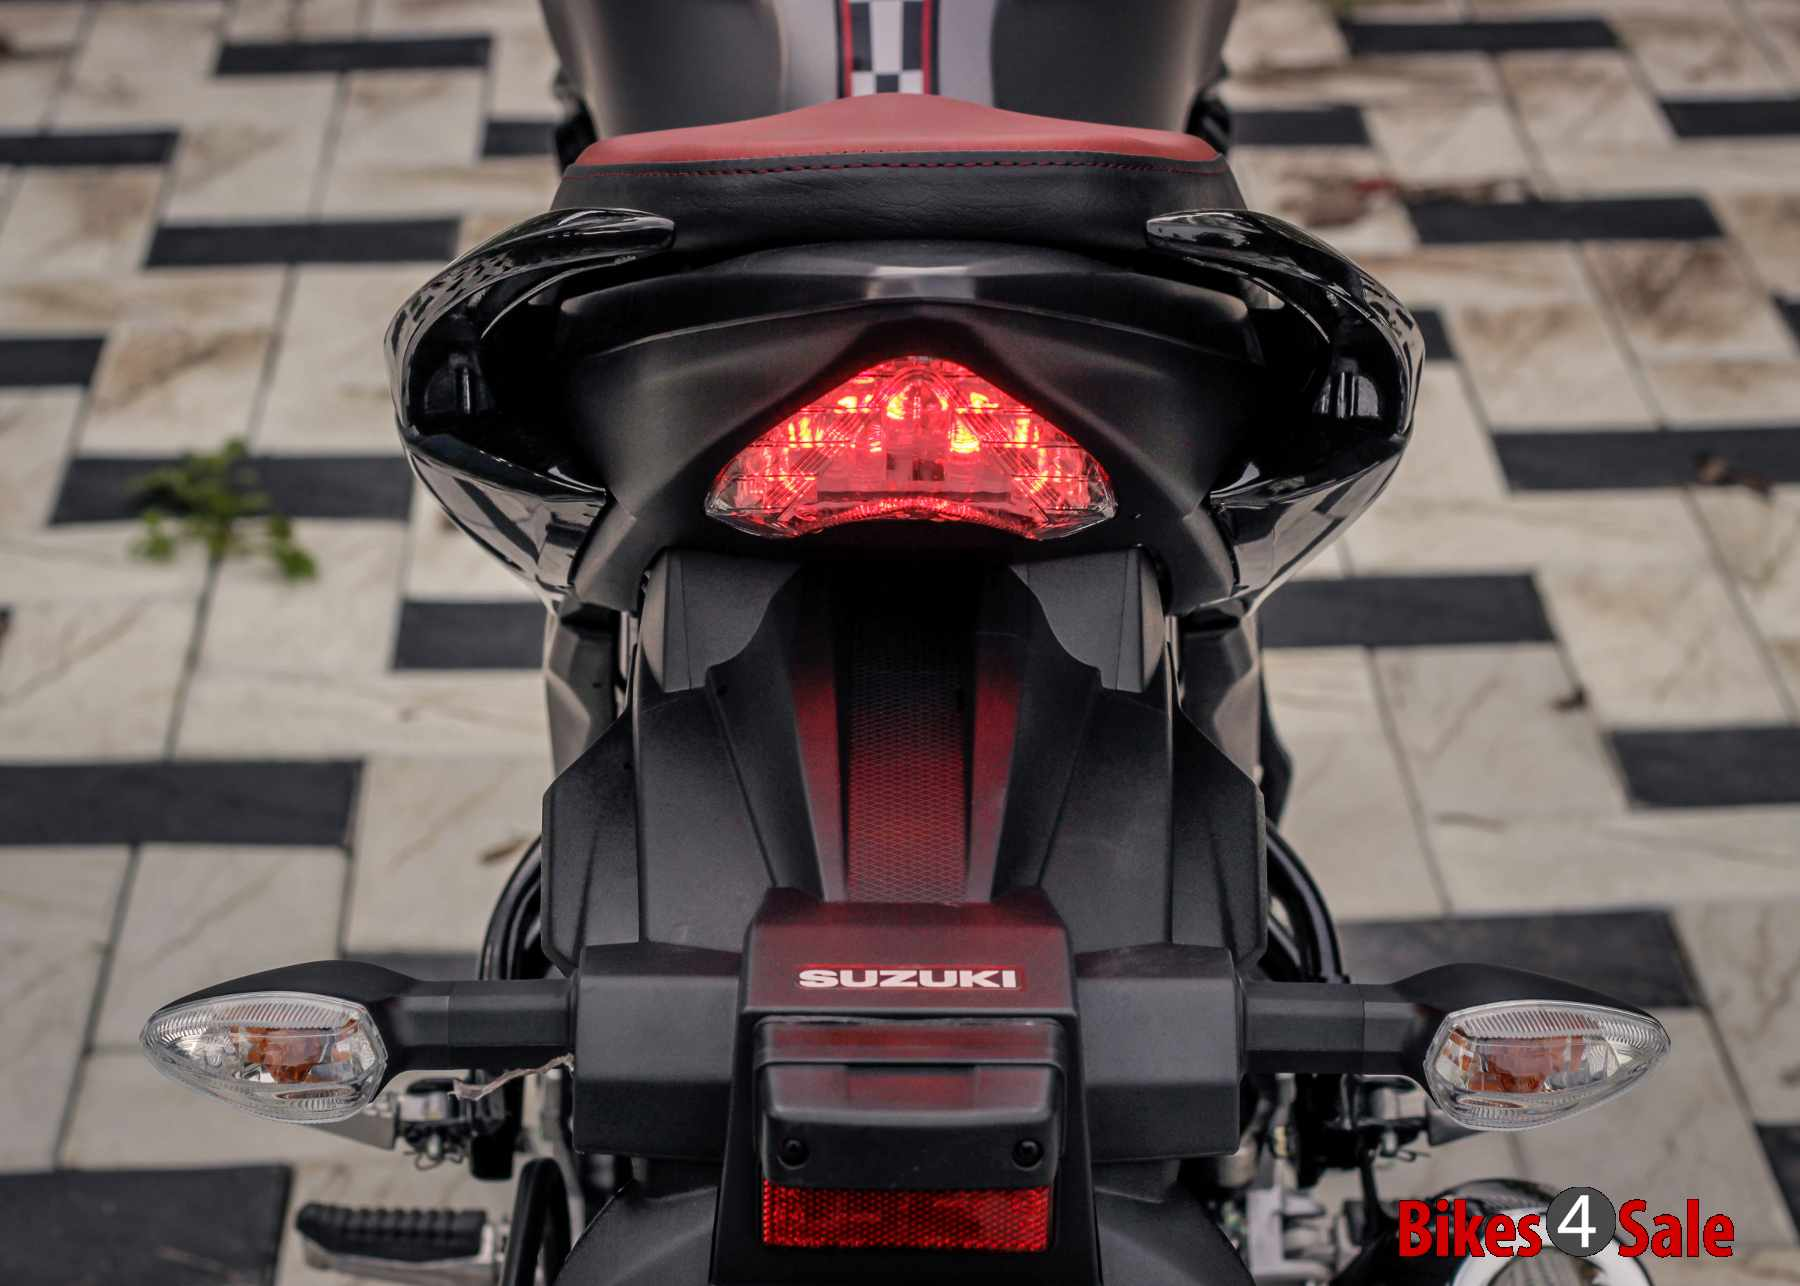 Suzuki Gixxer SP LED tail lamp